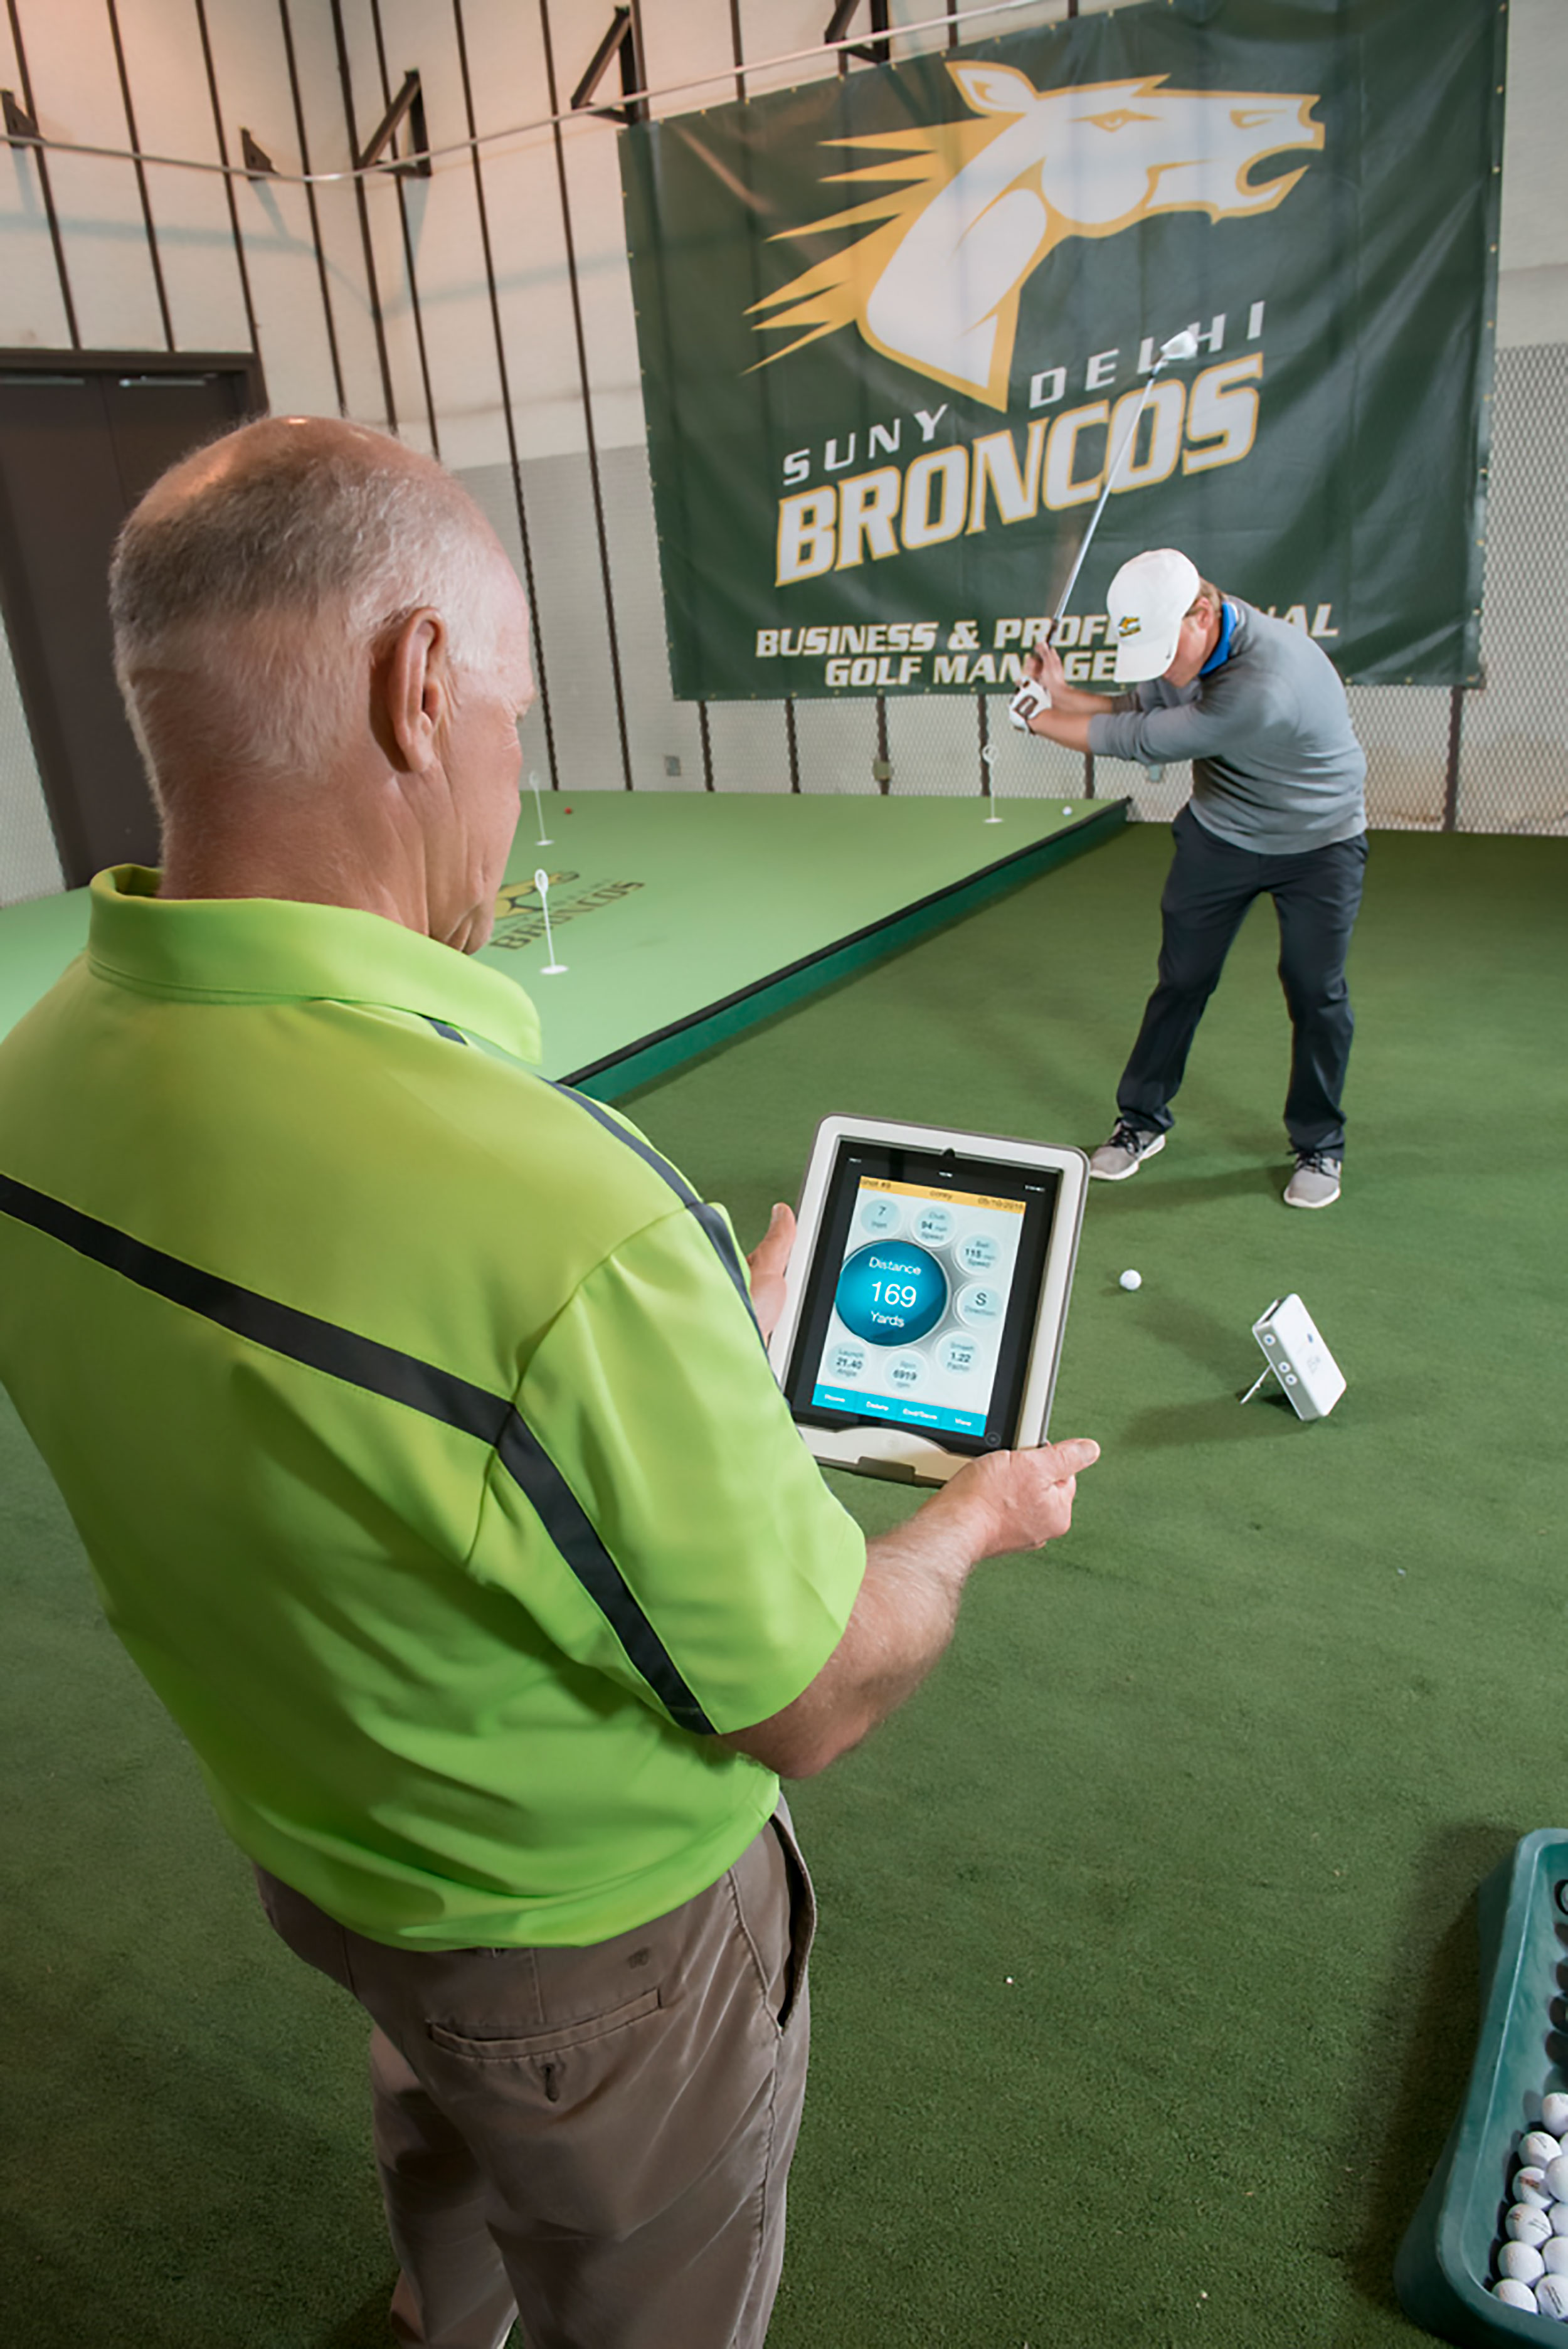 Student in golfing indoors with professor looking at tablet